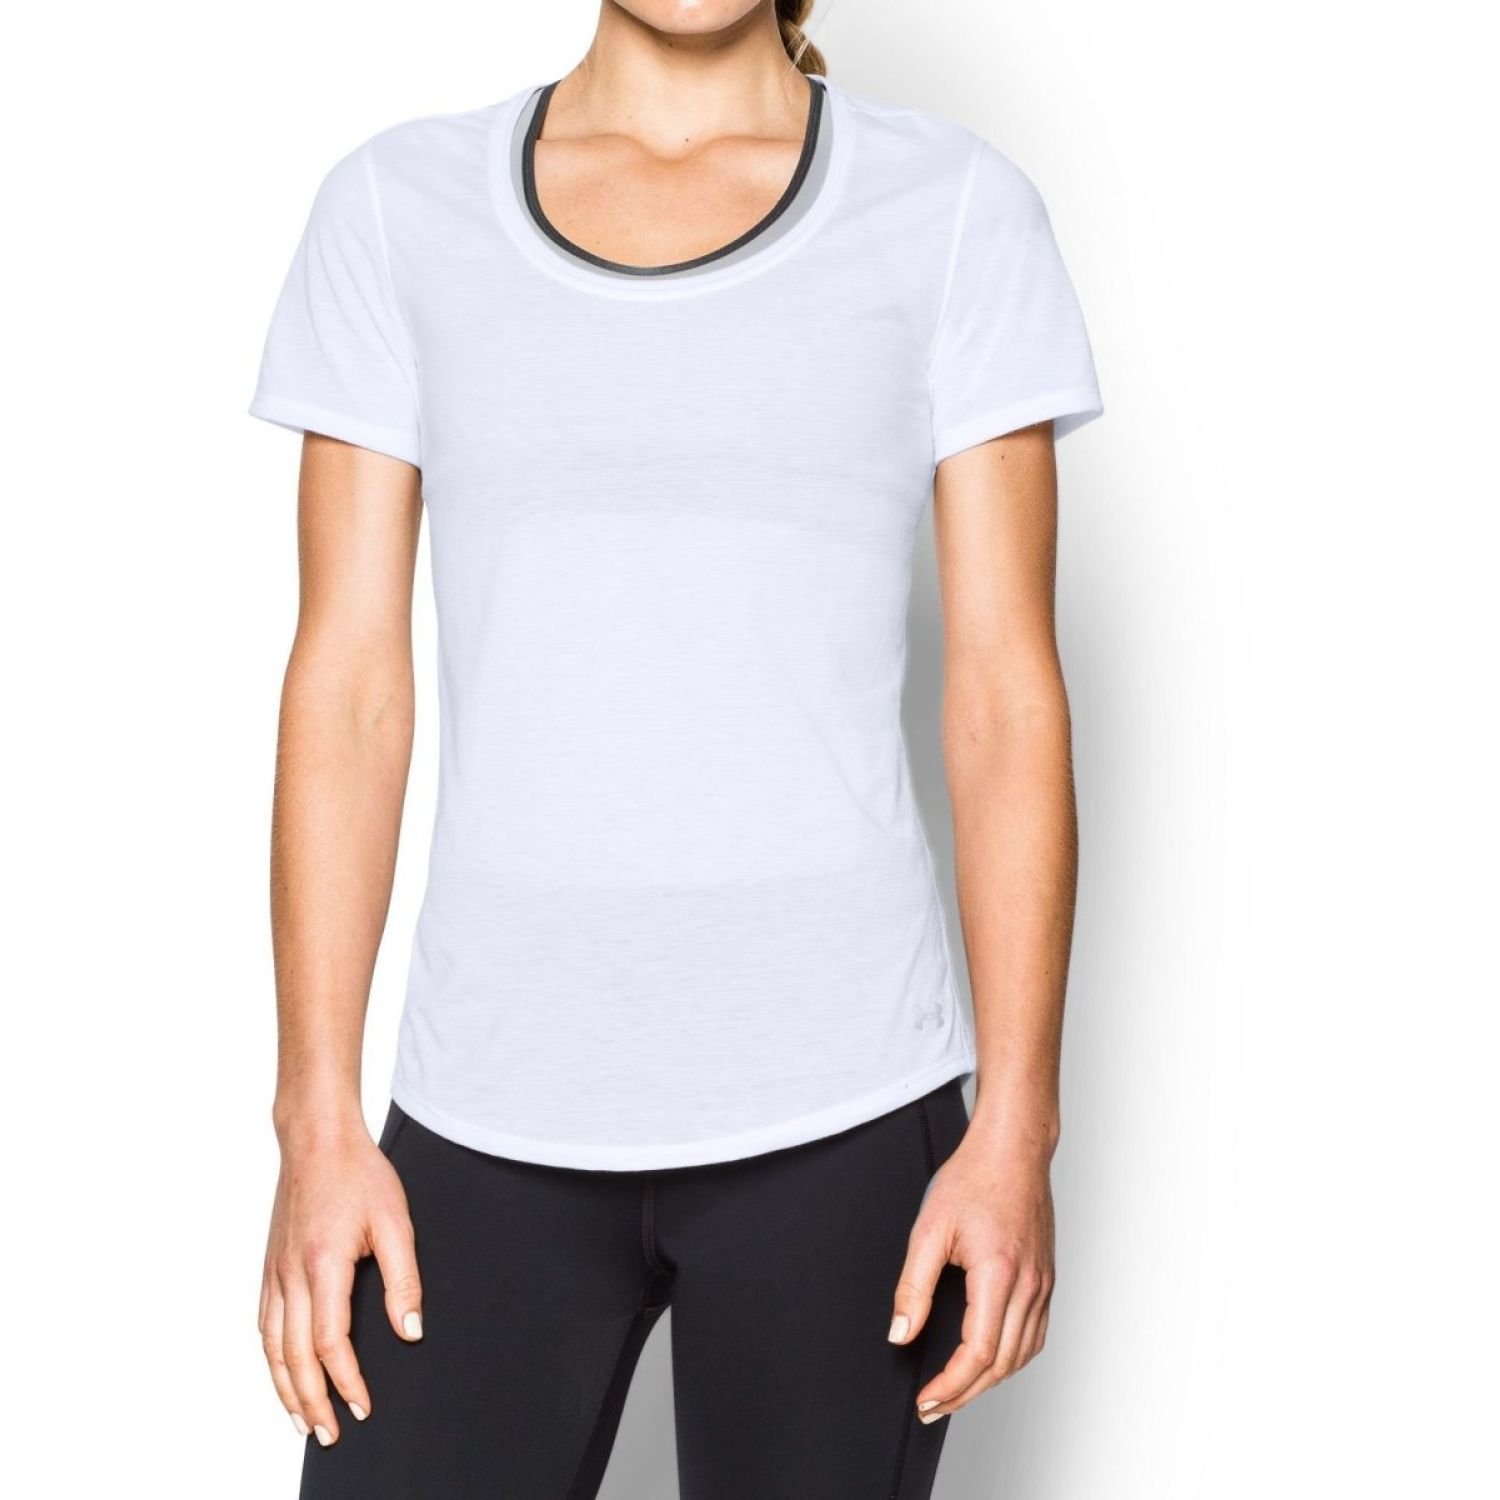 Deportivo de Mujer Under Armour Blanco charged nls ss